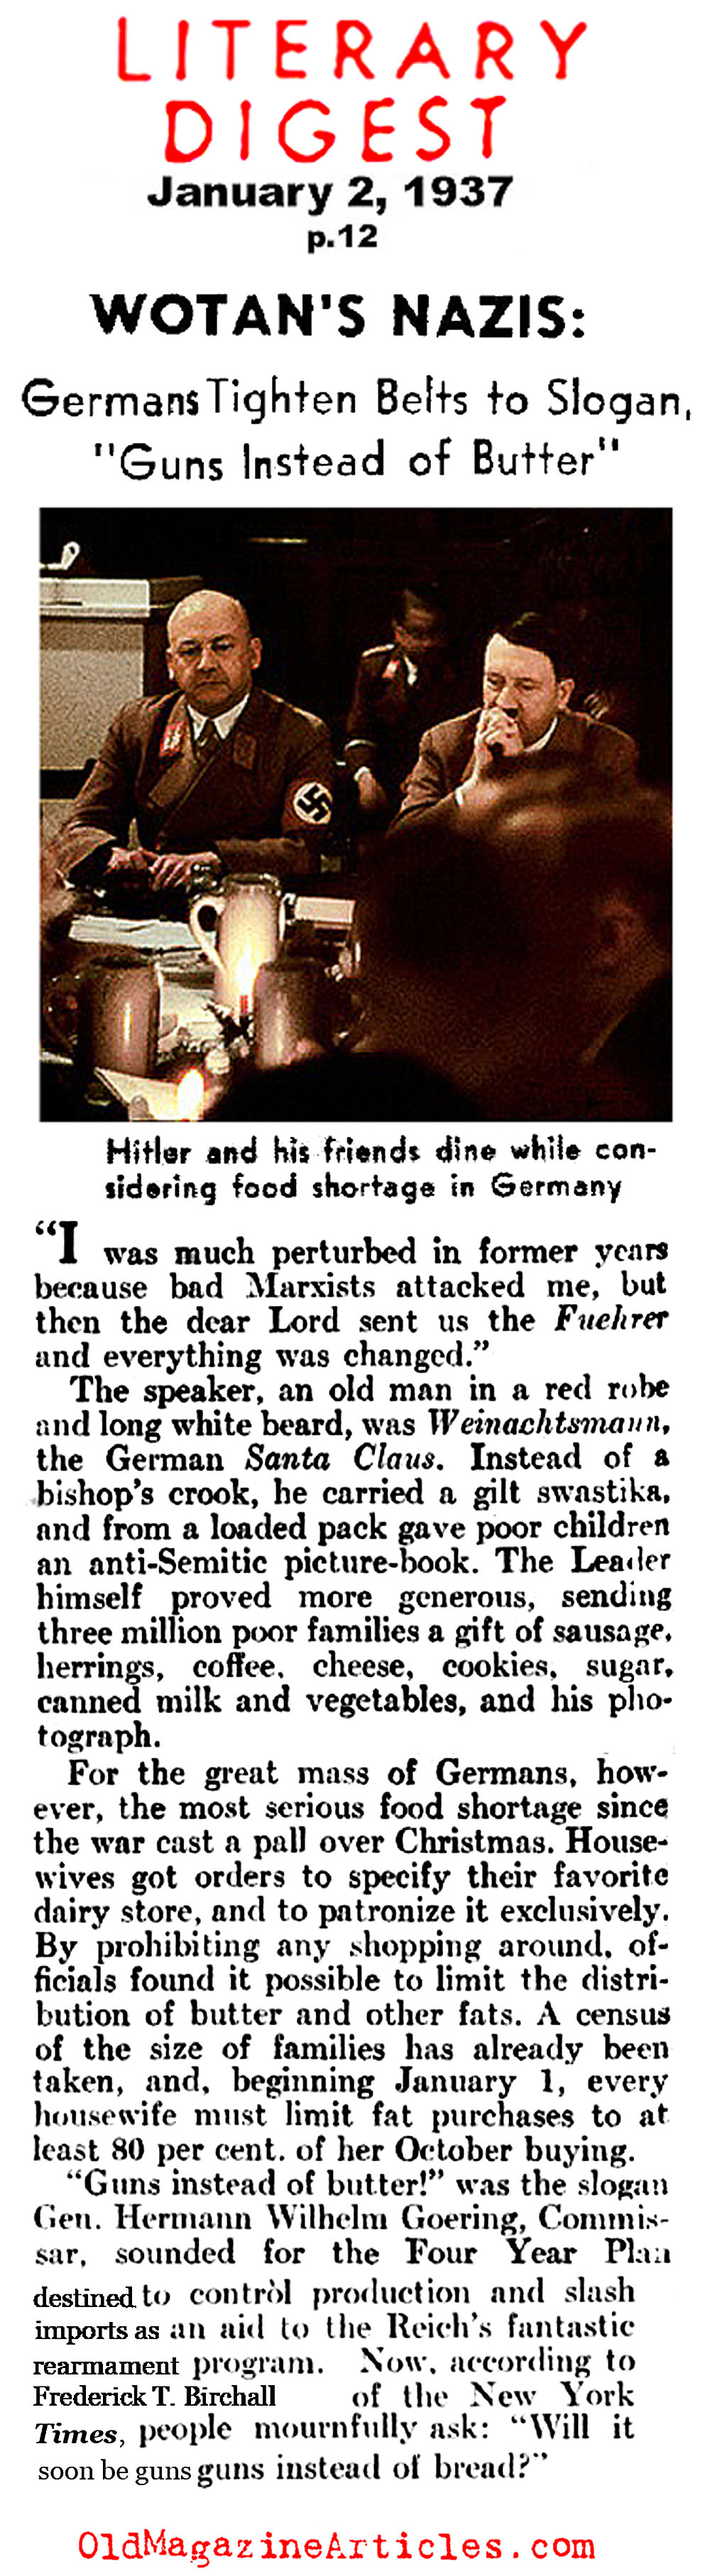 Food Shortages in the Third Reich (Literary Digest, 1937)